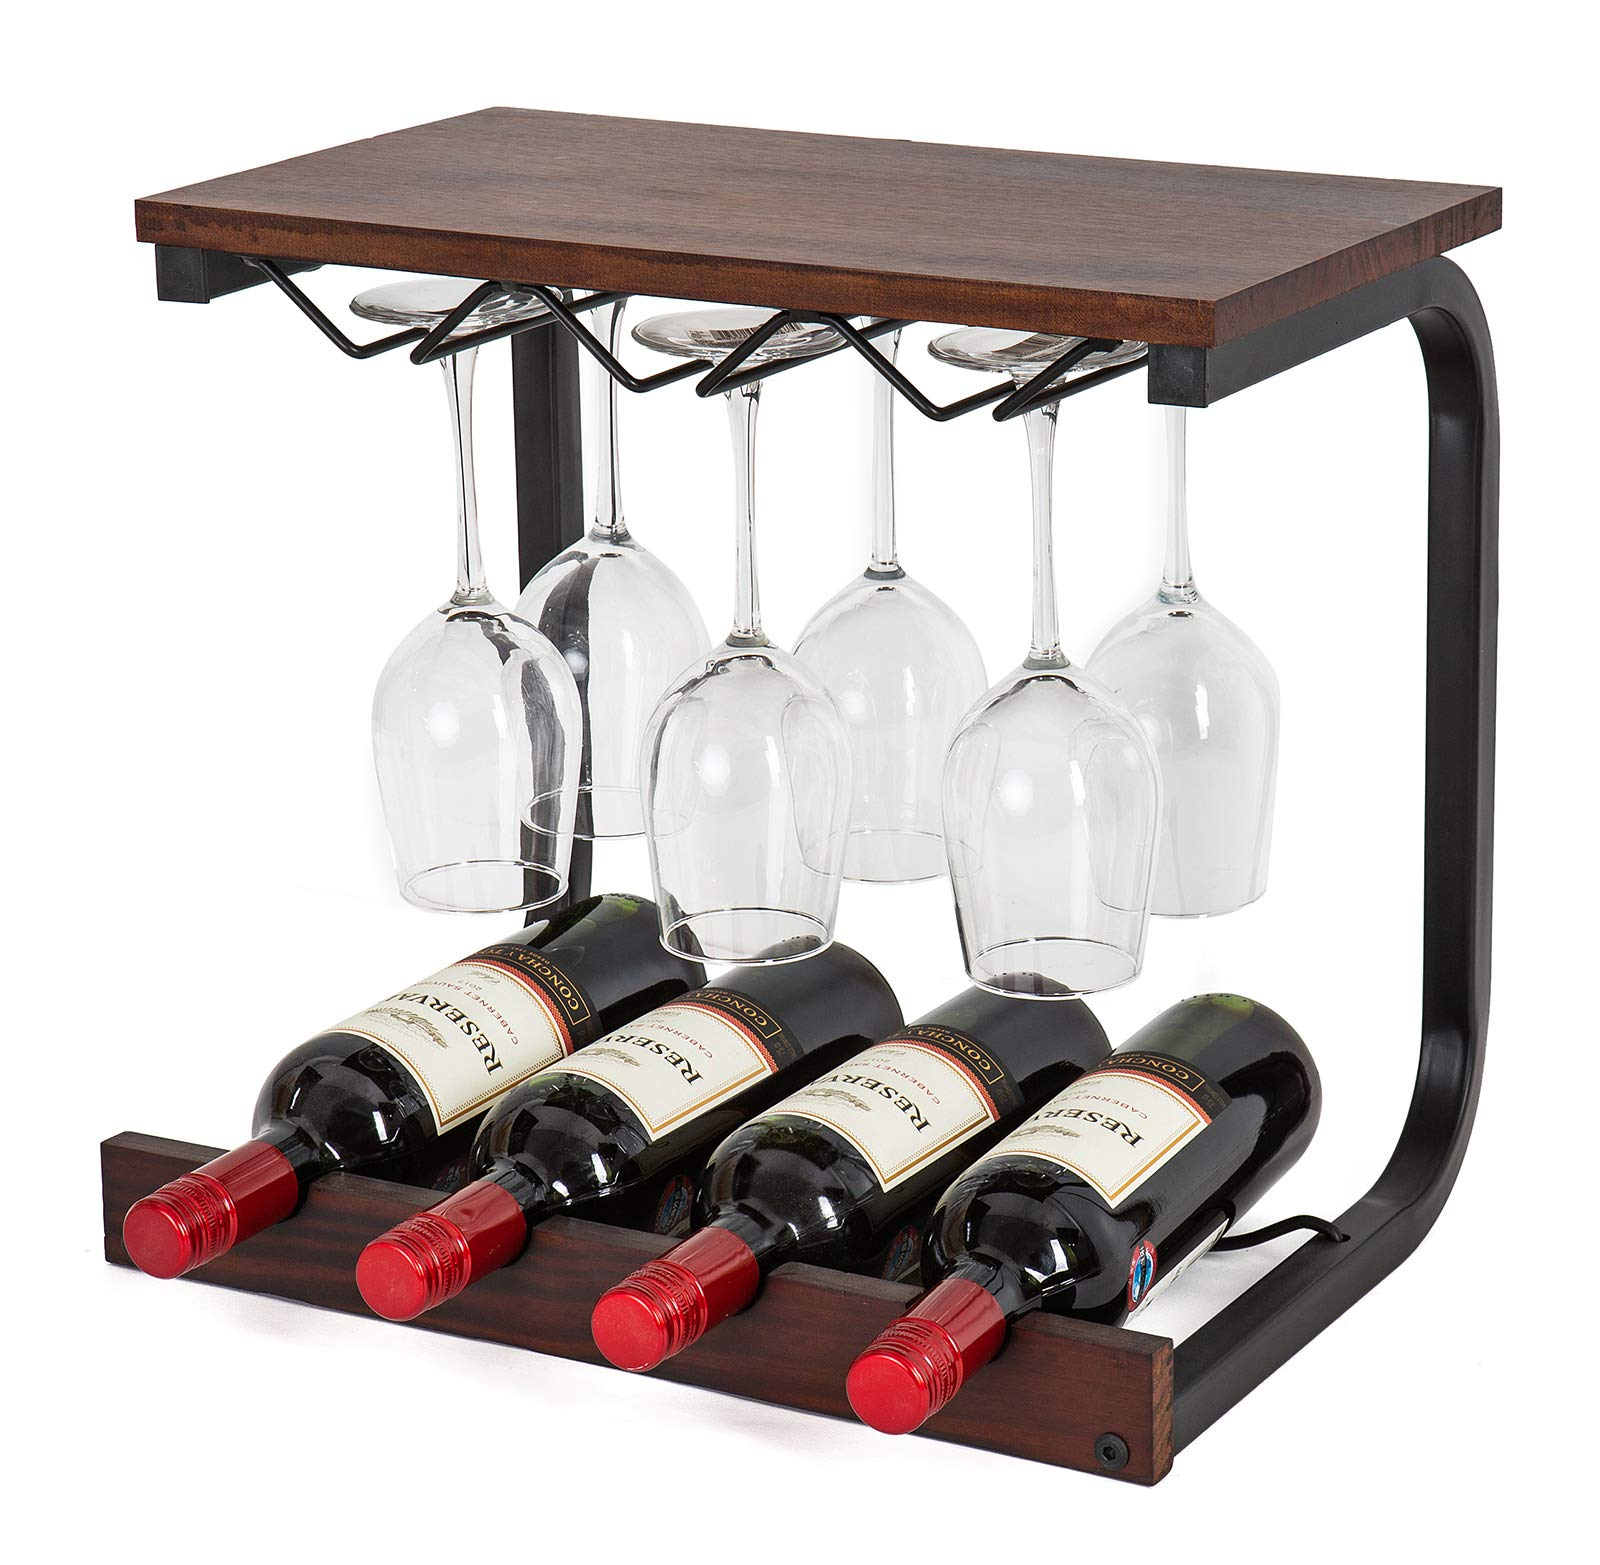 SODUKU Wine Rack Wall Mounted Handmade Metal & Wood Wine Countertop Rack Wine Storage Shelf with 4 Bottle Cages & 6 Long Stem Glass Walnut by SODUKU